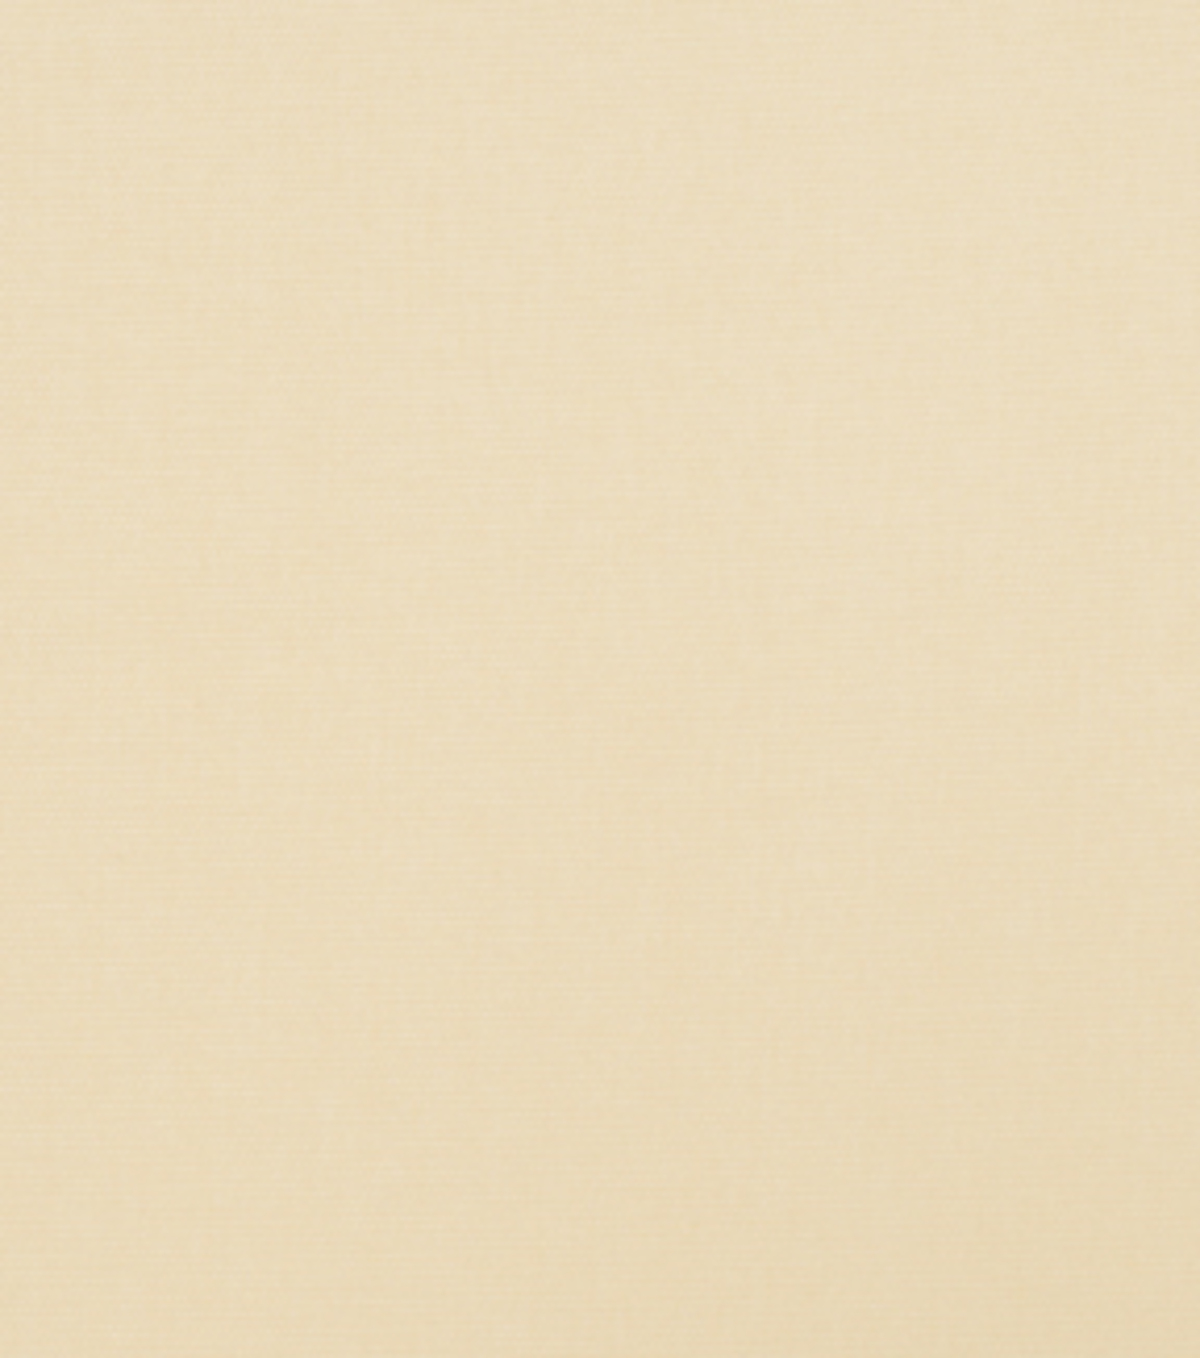 Home Decor 8\u0022x8\u0022 Fabric Swatch-Eaton Square Depot Alabaster